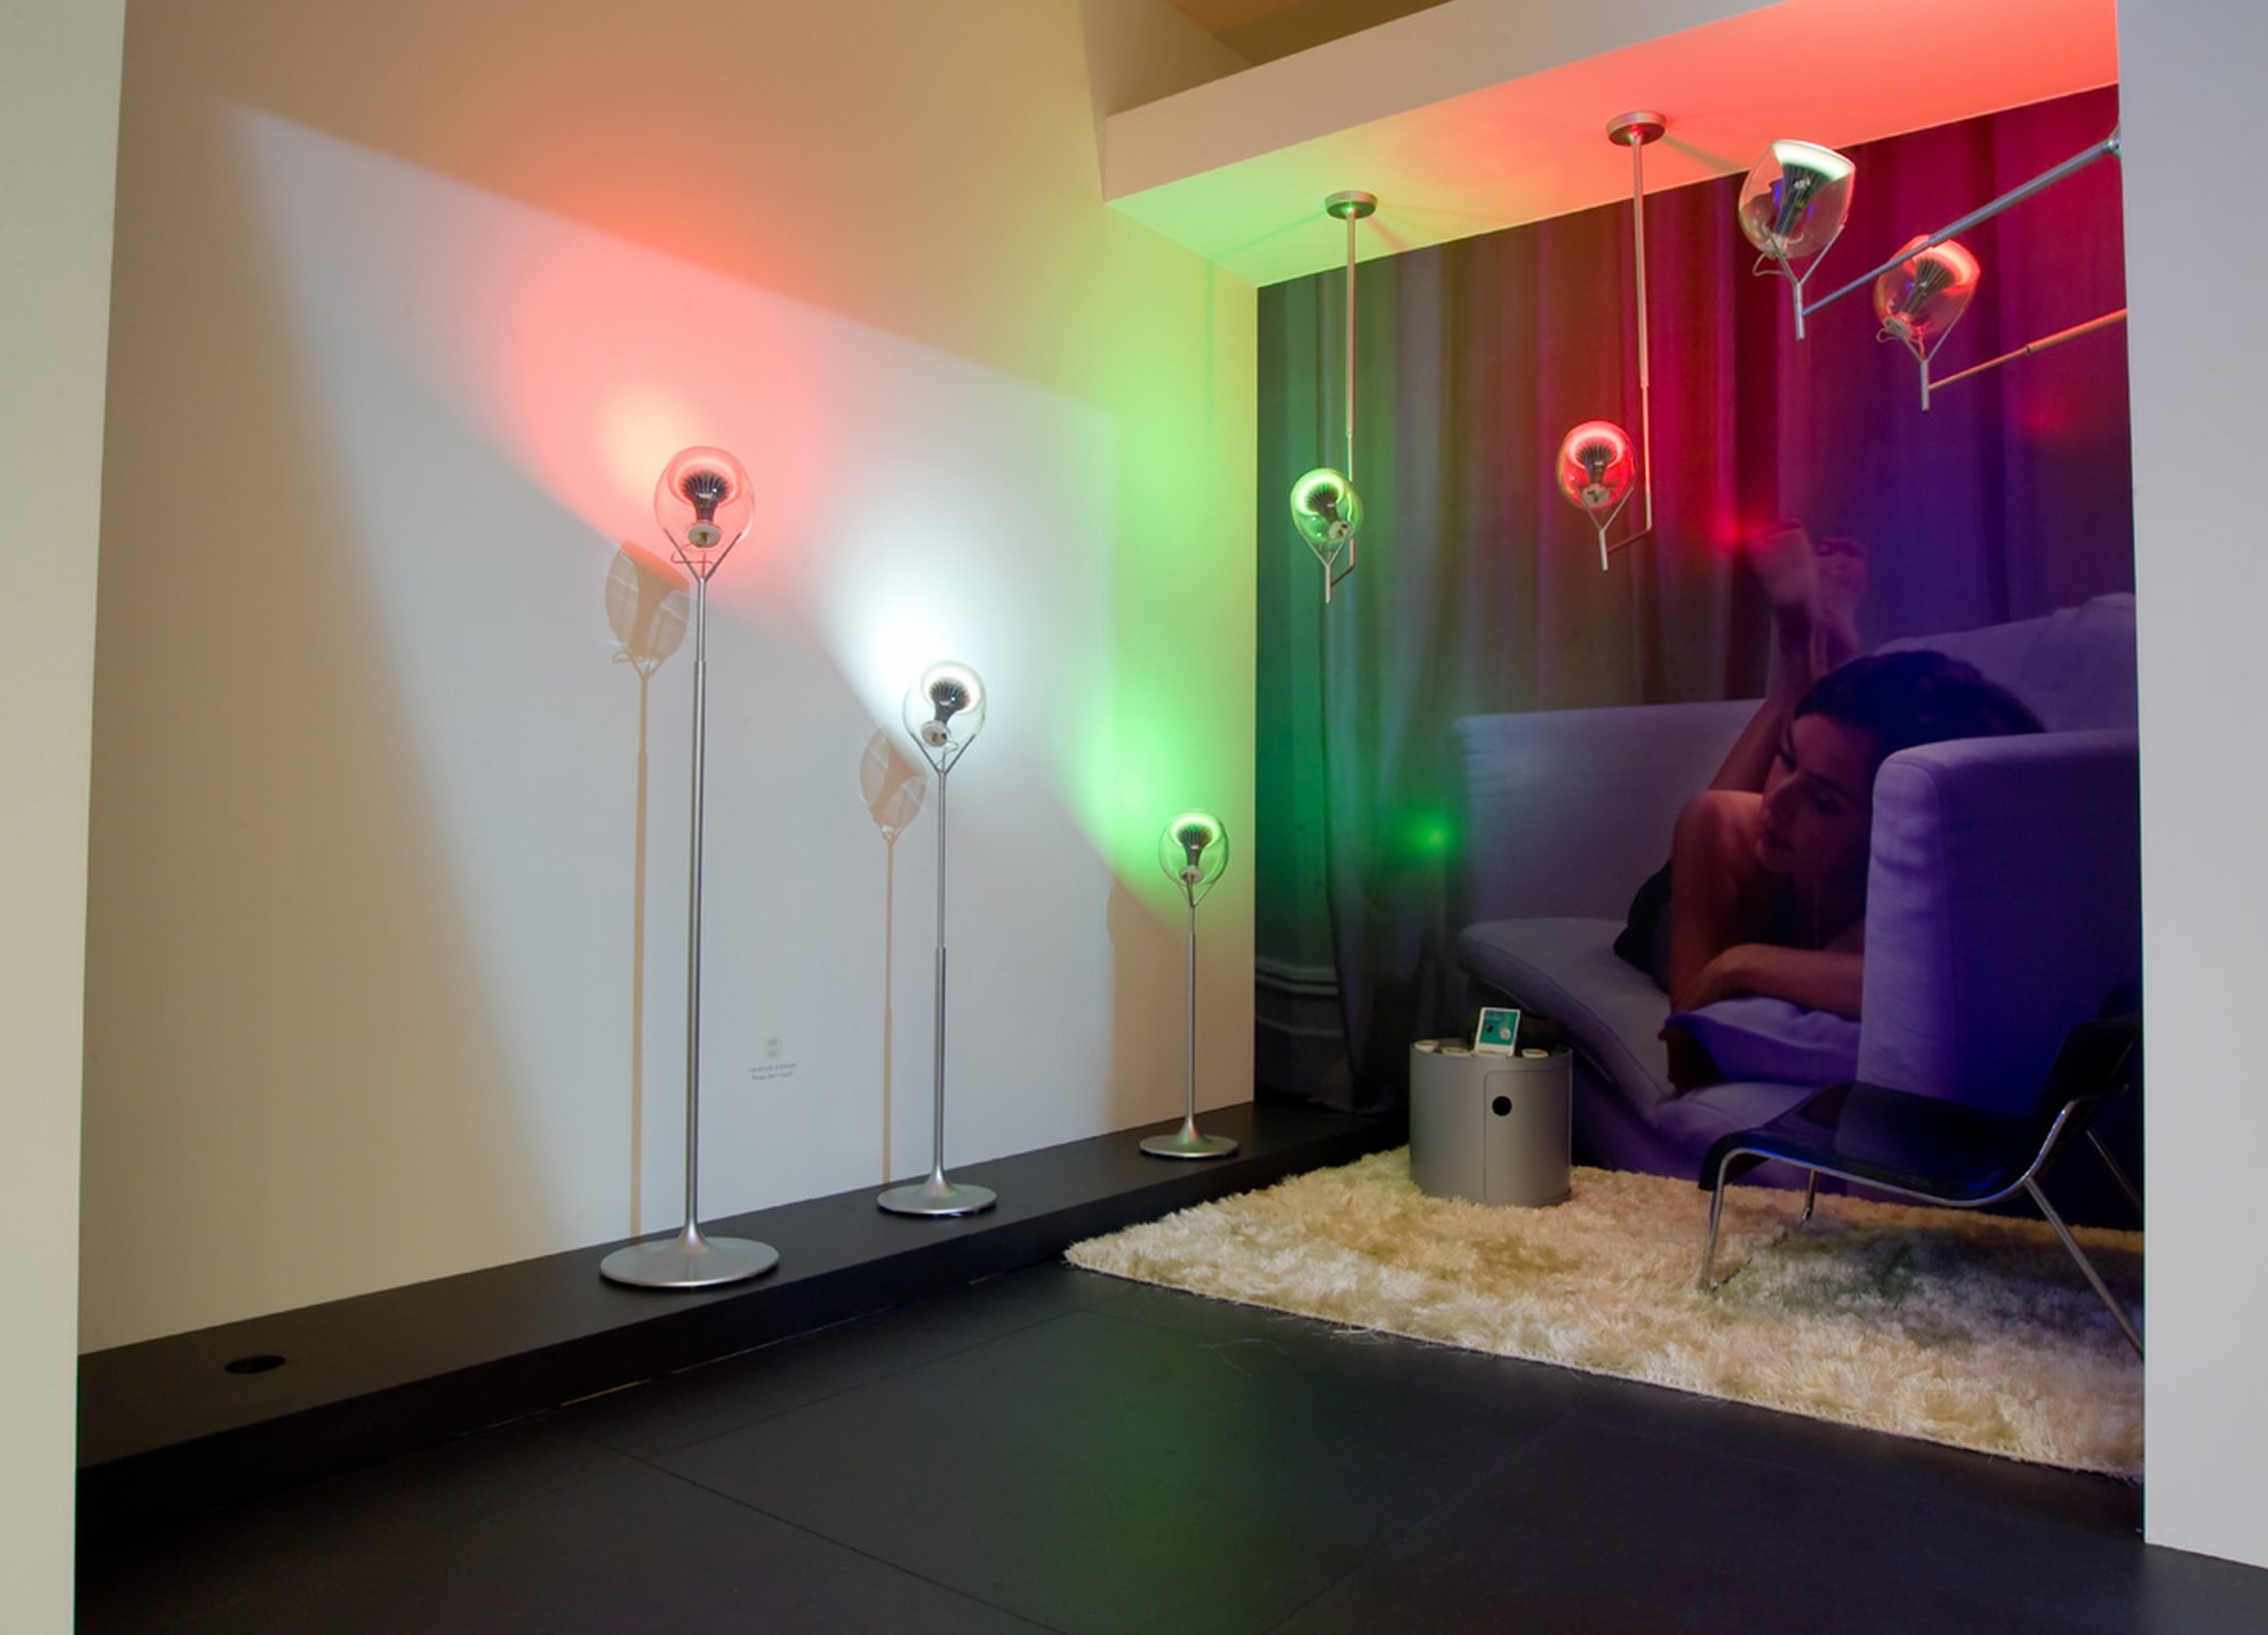 Philips living colors philips livingcolors 16 million - Philips living colors ...